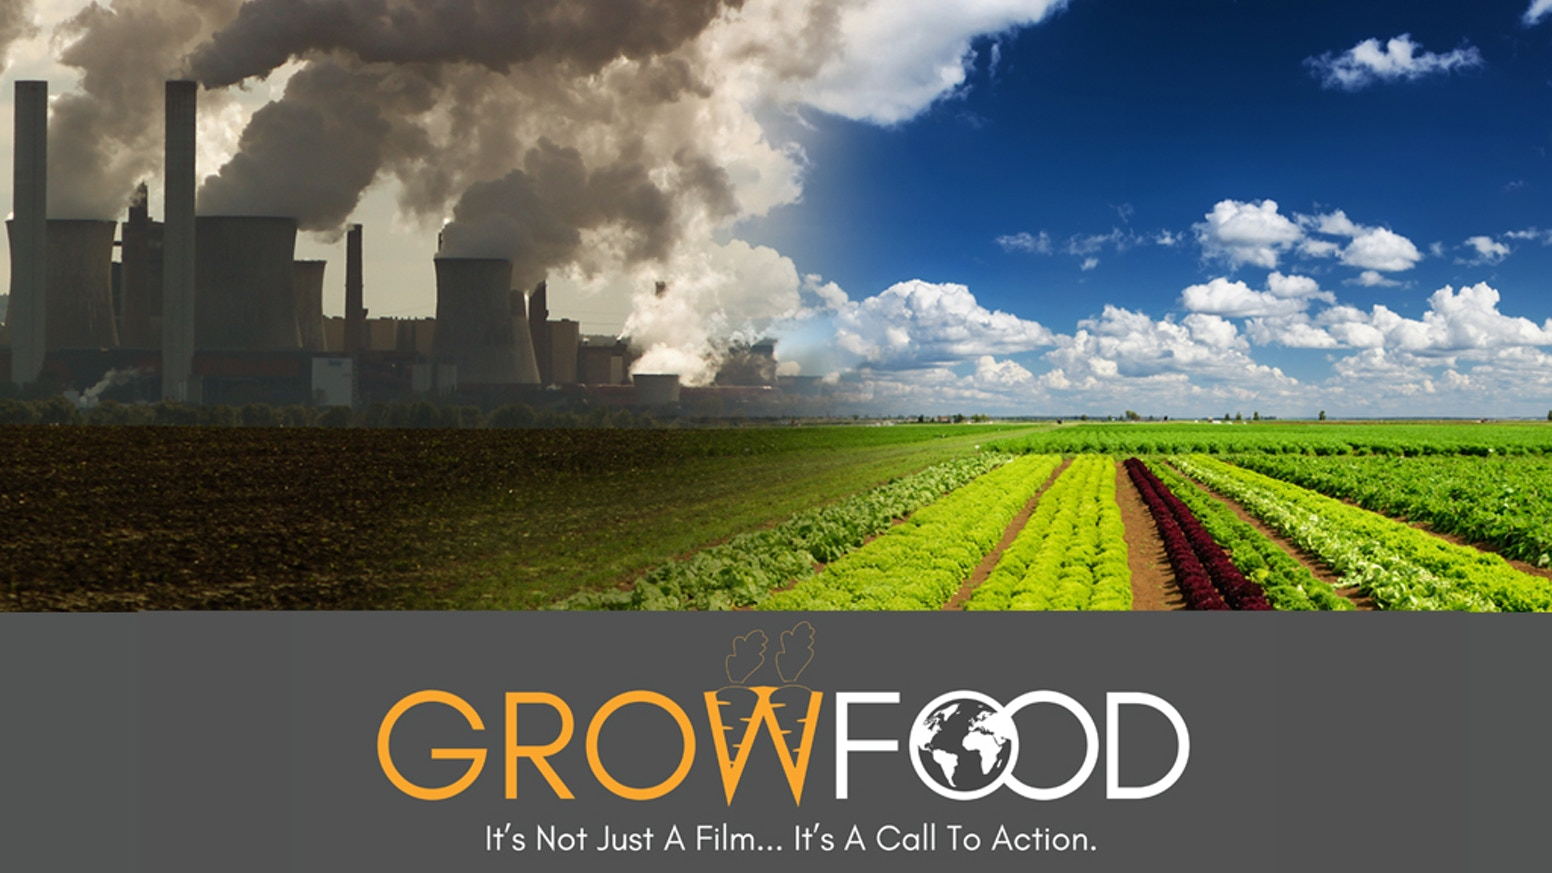 Documentary filmmakers seek to charge a global movement with one big idea: growing food can fix a majority of the world's problems.